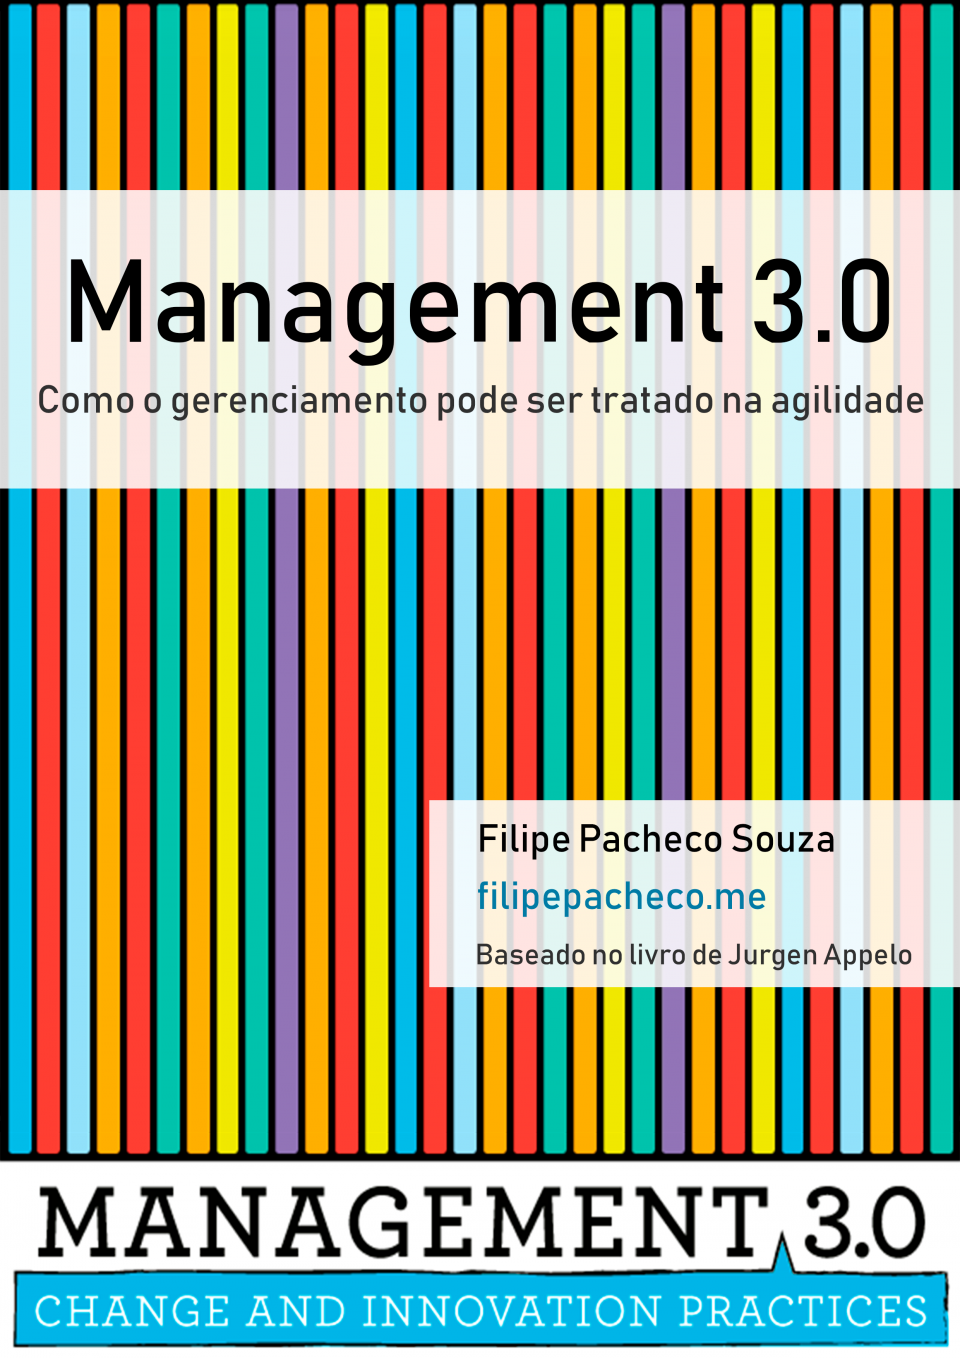 ebook-management30-Filipe-Pacheco